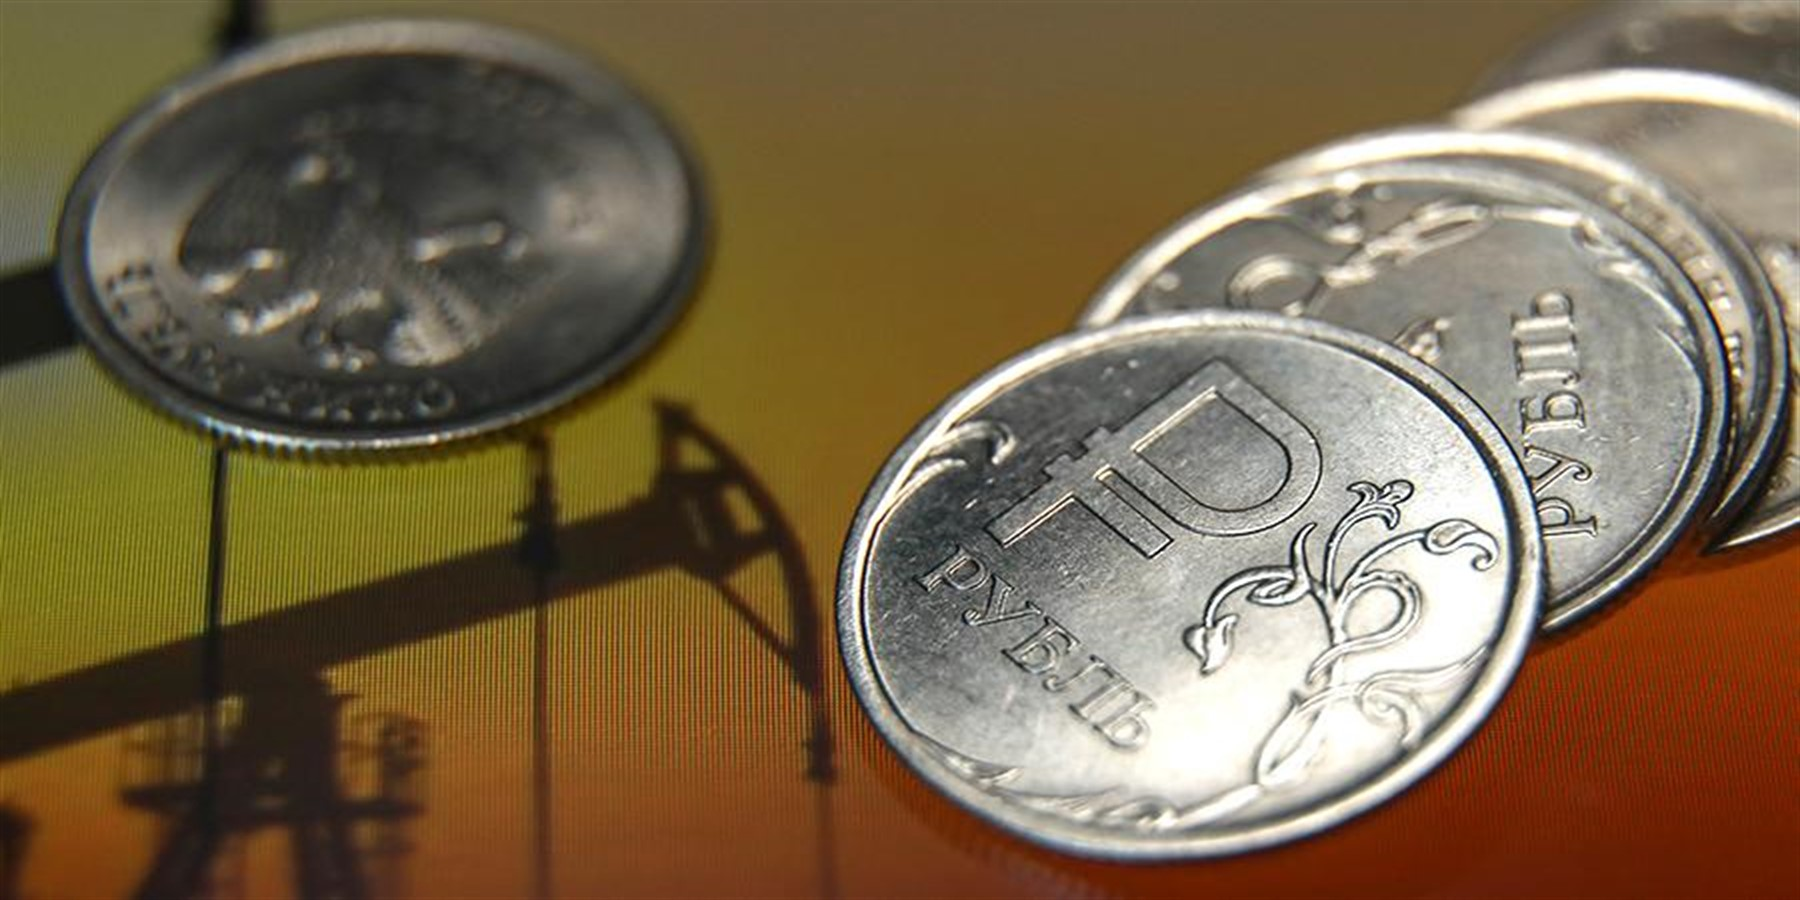 WTI oil prices on the ruble exchange rate